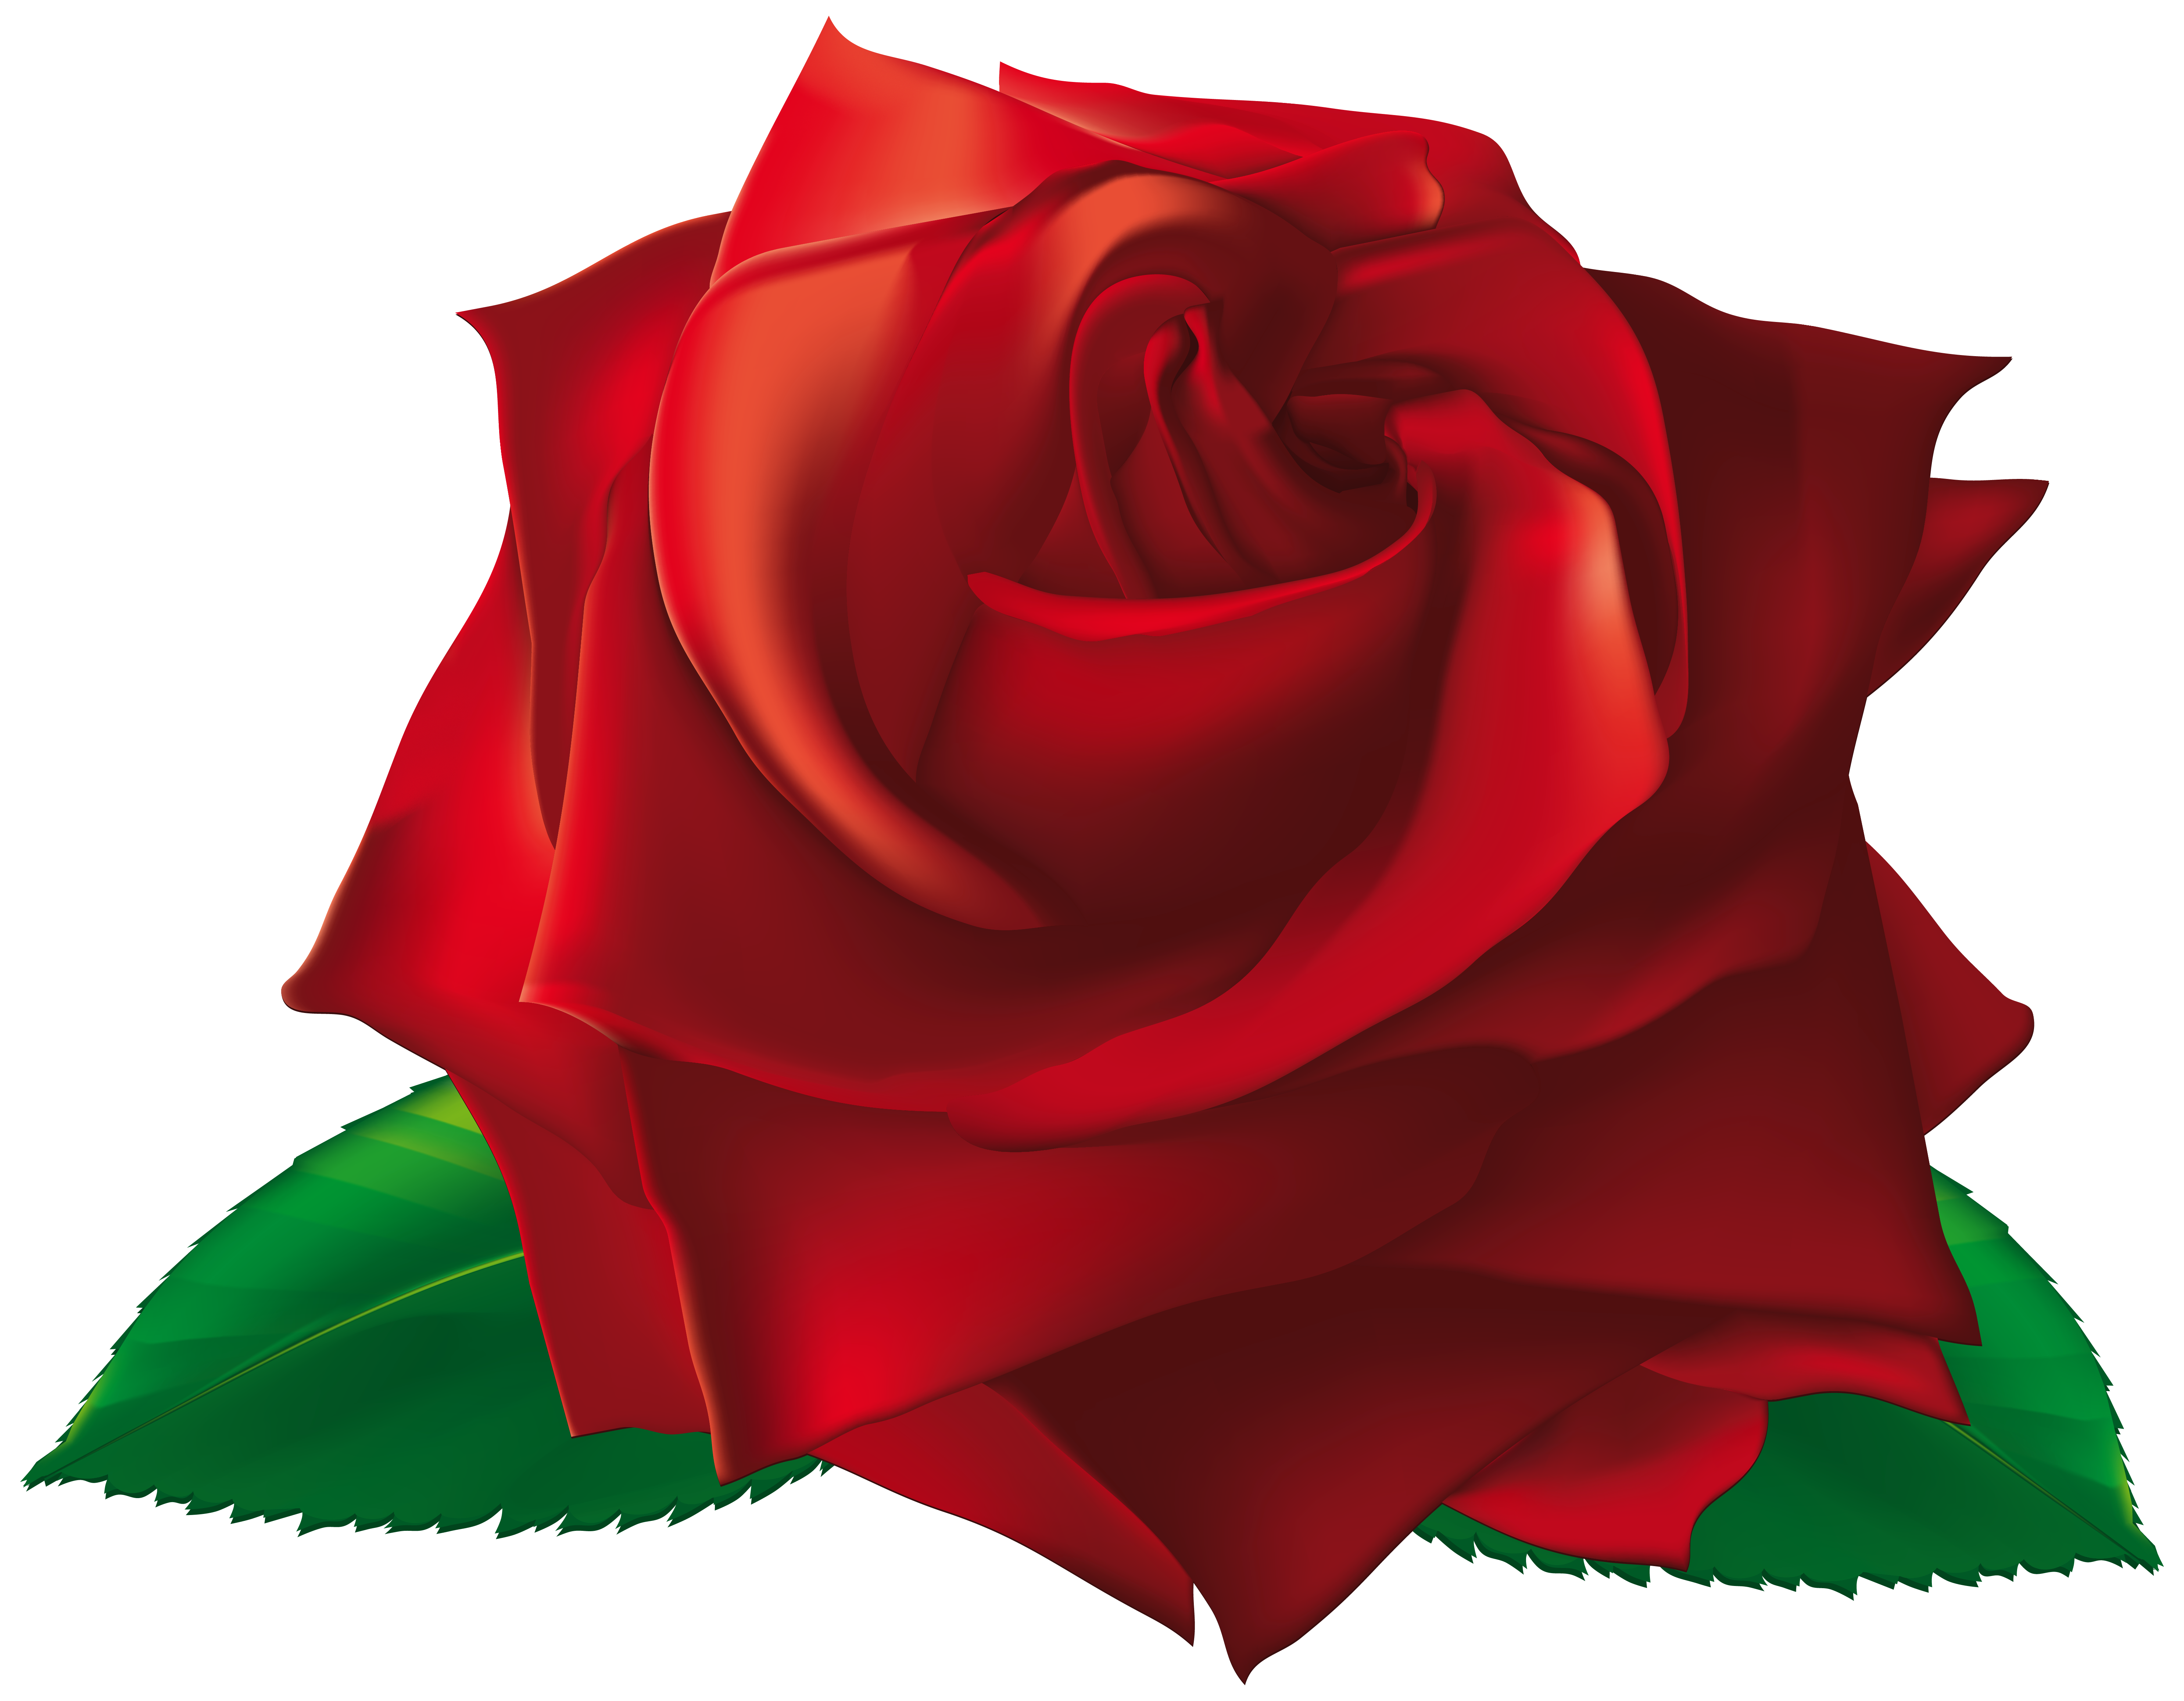 Red png image gallery. Clipart rose single